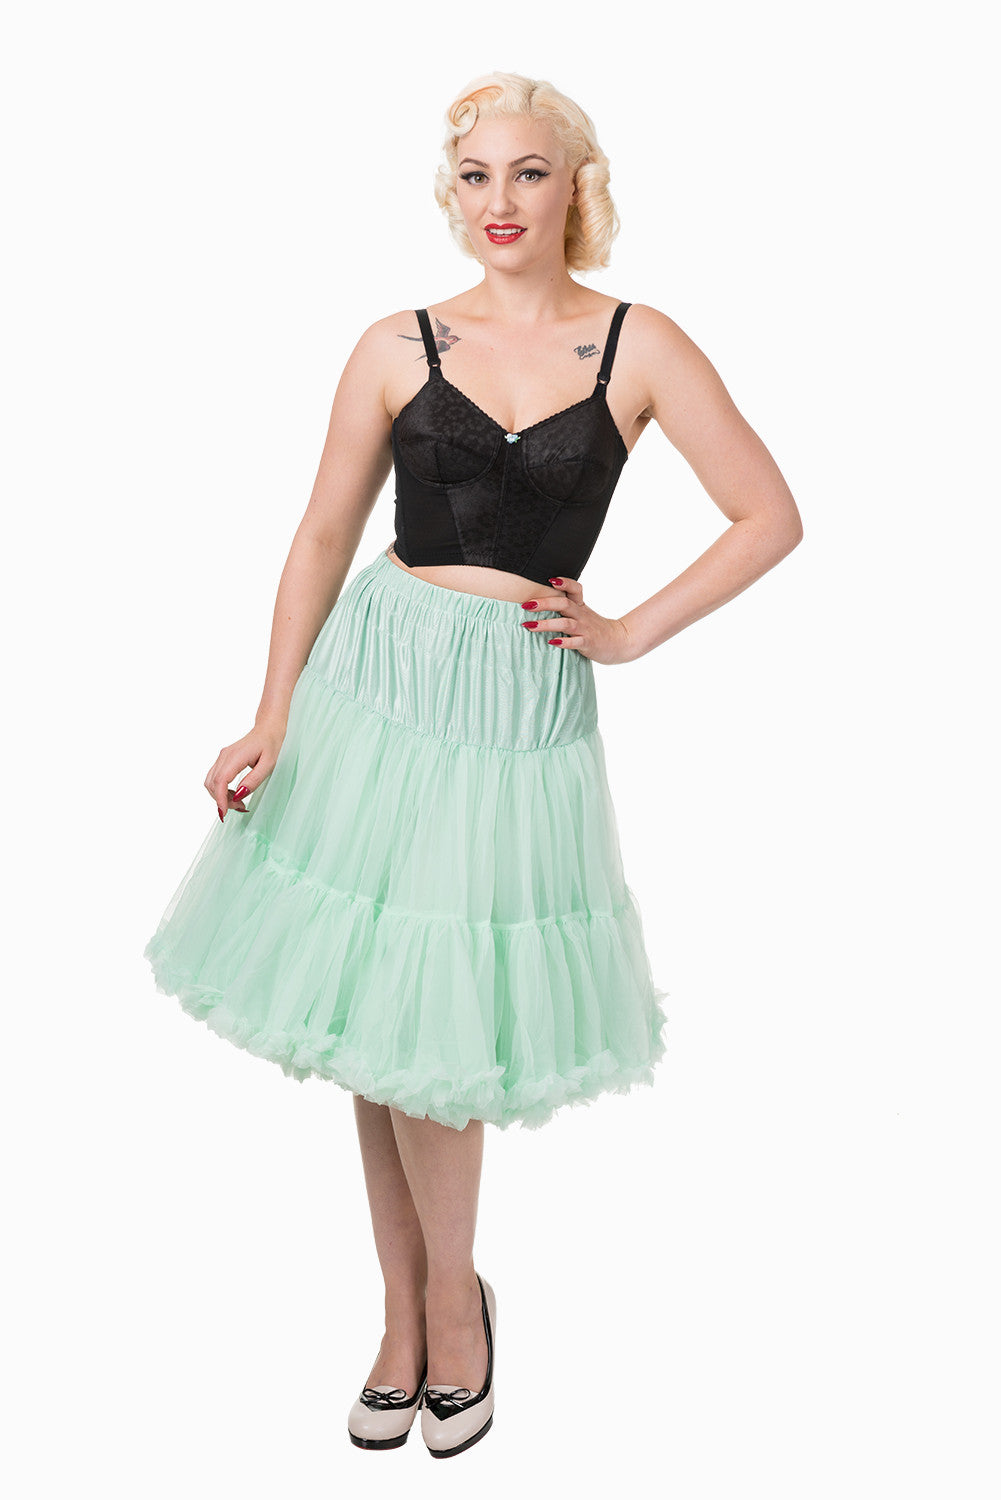 Lifeforms Petticoat in Mint